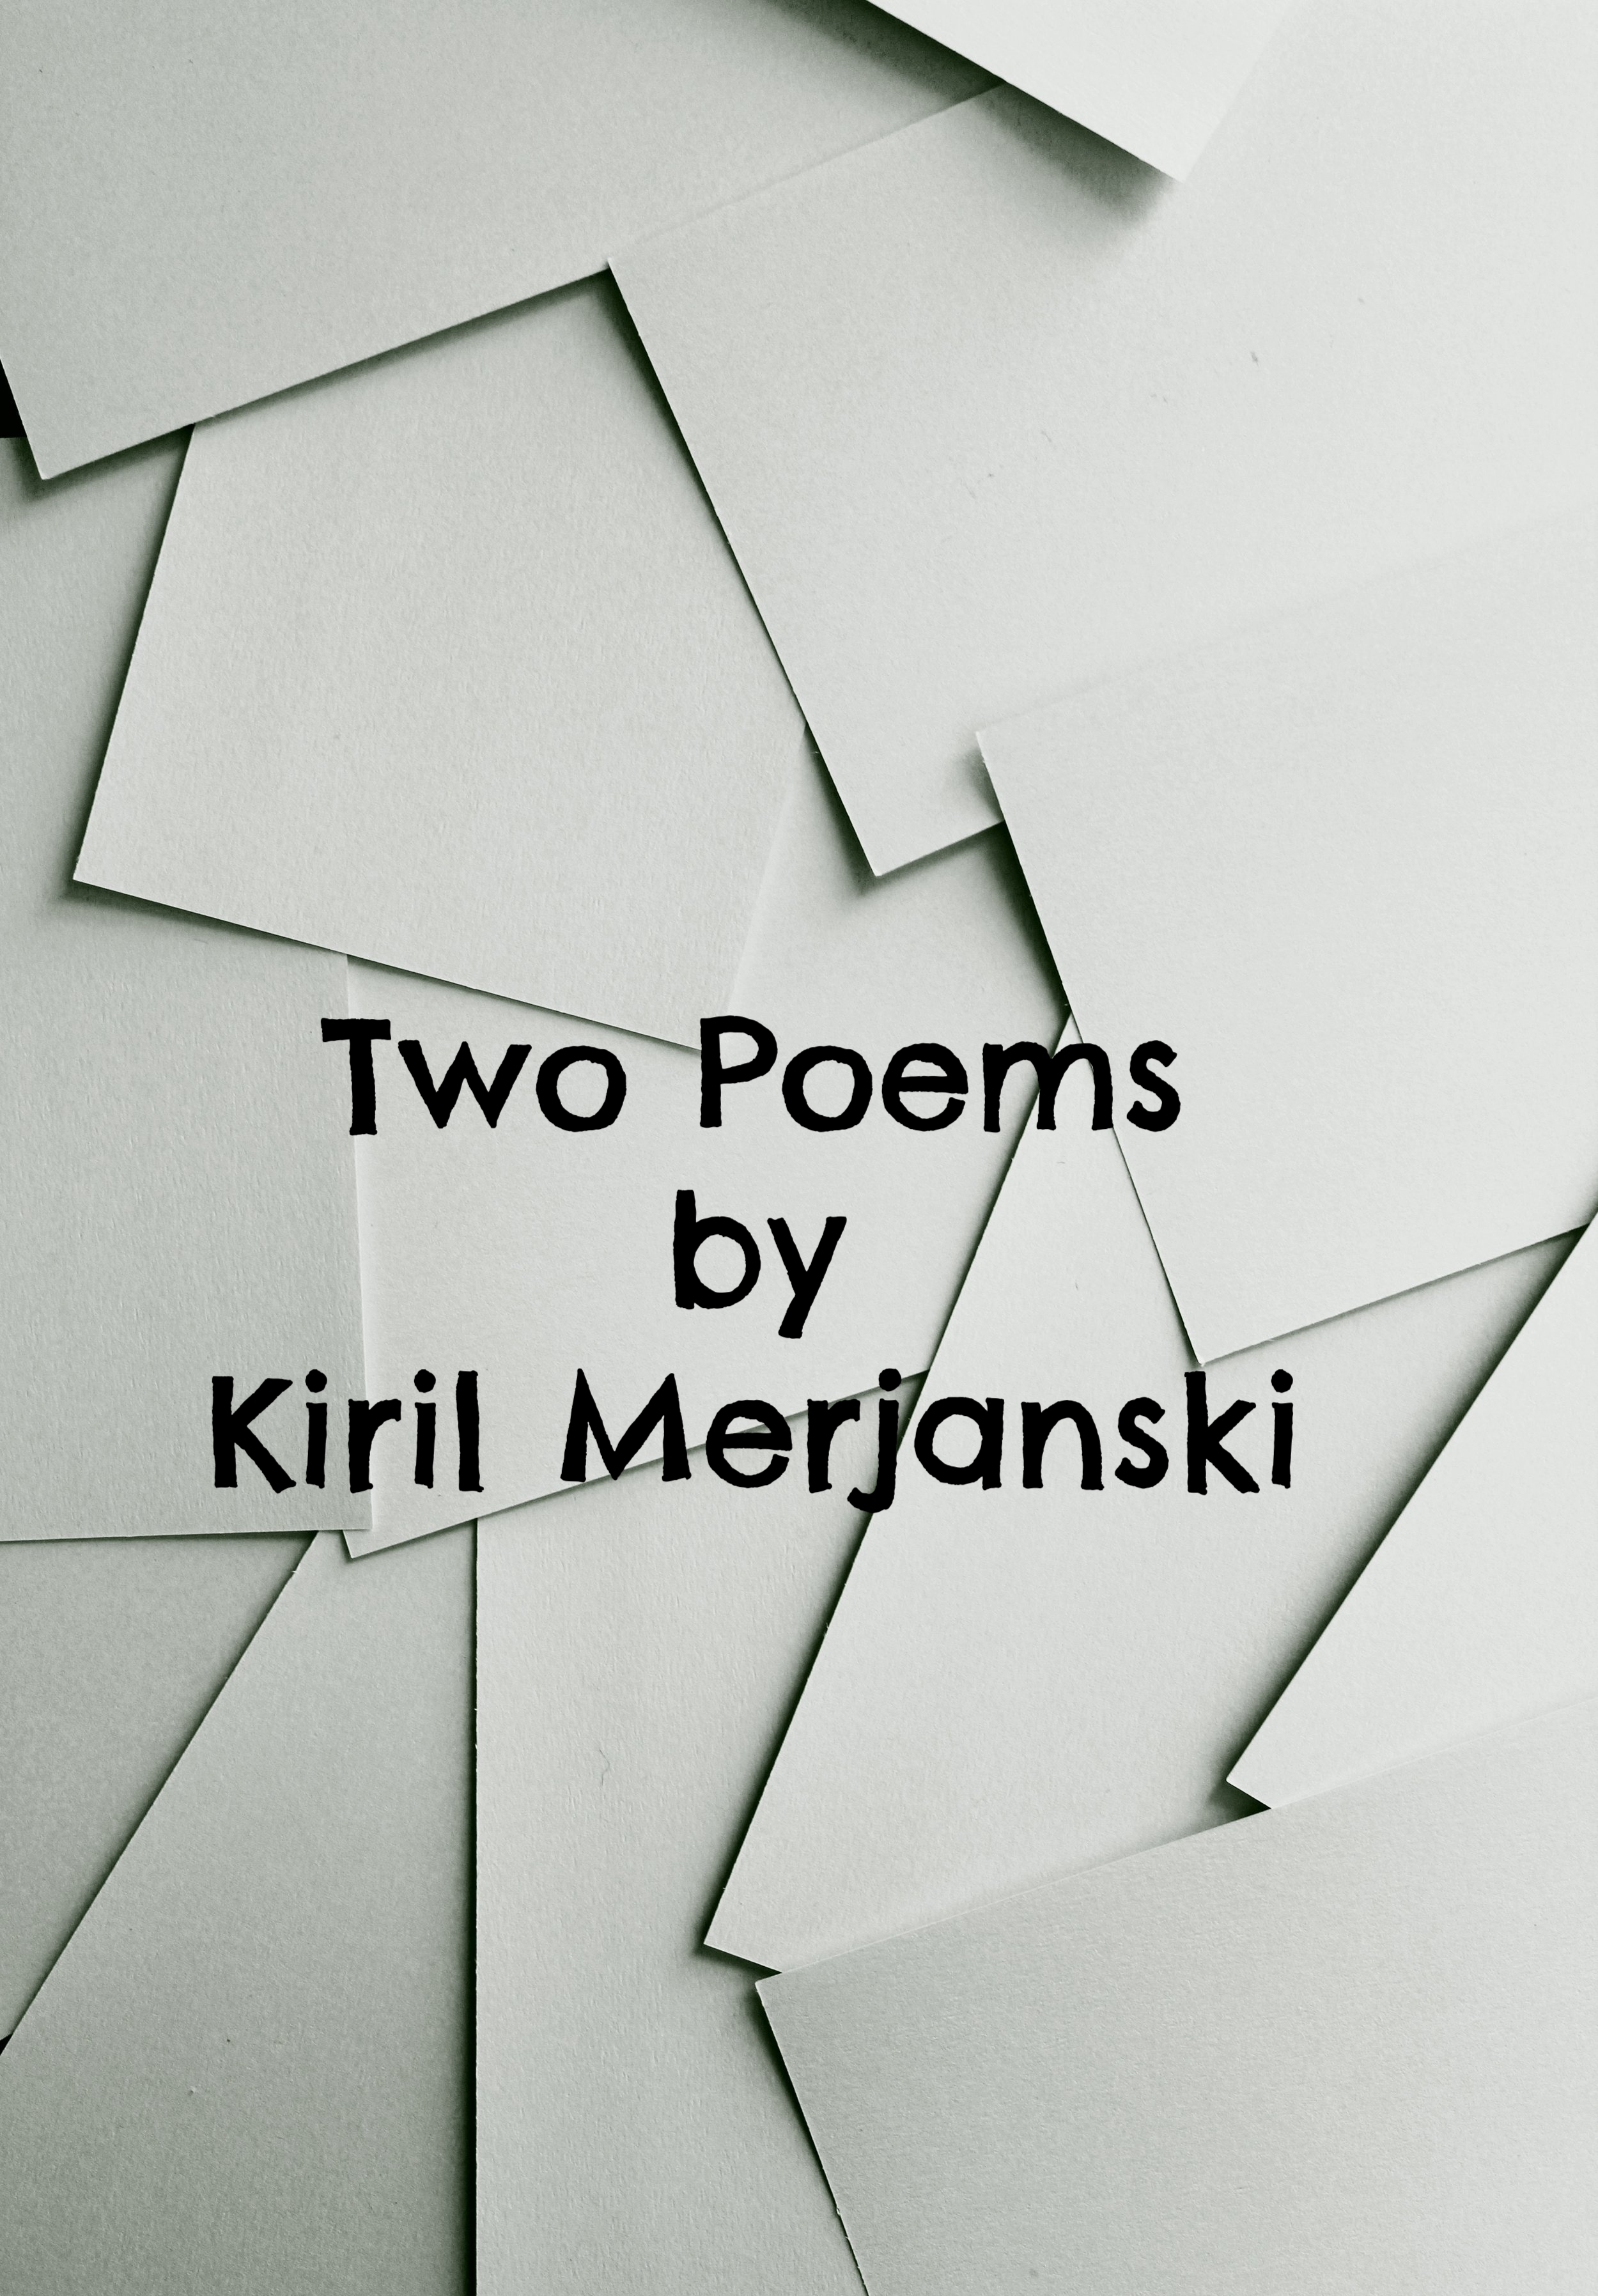 Two Poems by Kiril Merjanski